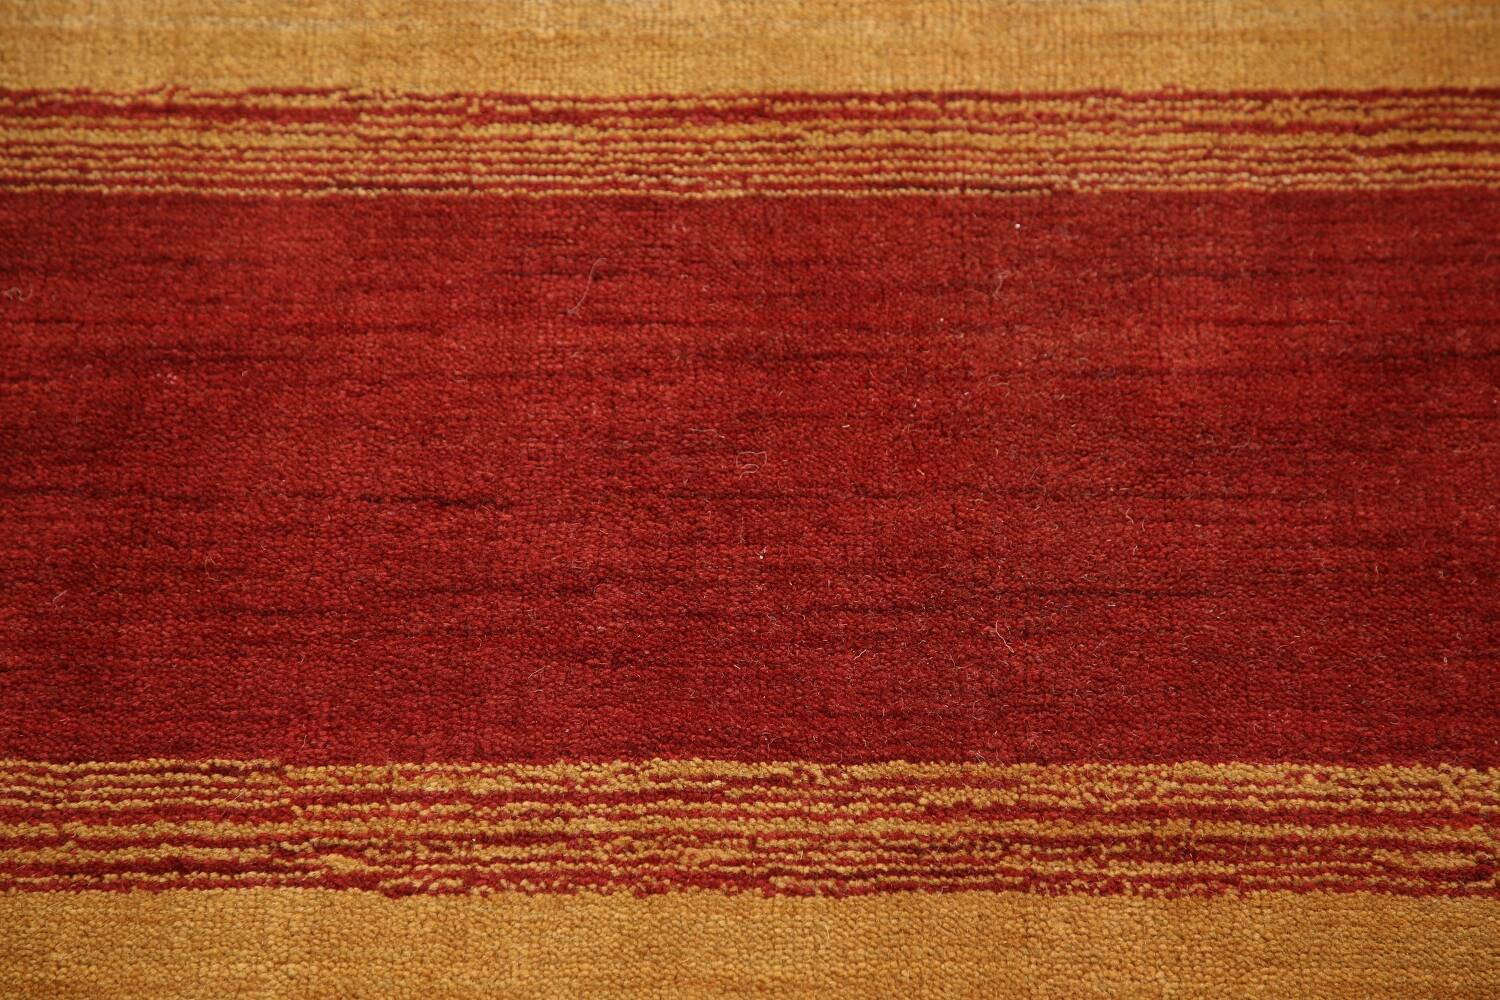 All-Over Striped Gabbeh Oriental Area Rug 9x12 image 9